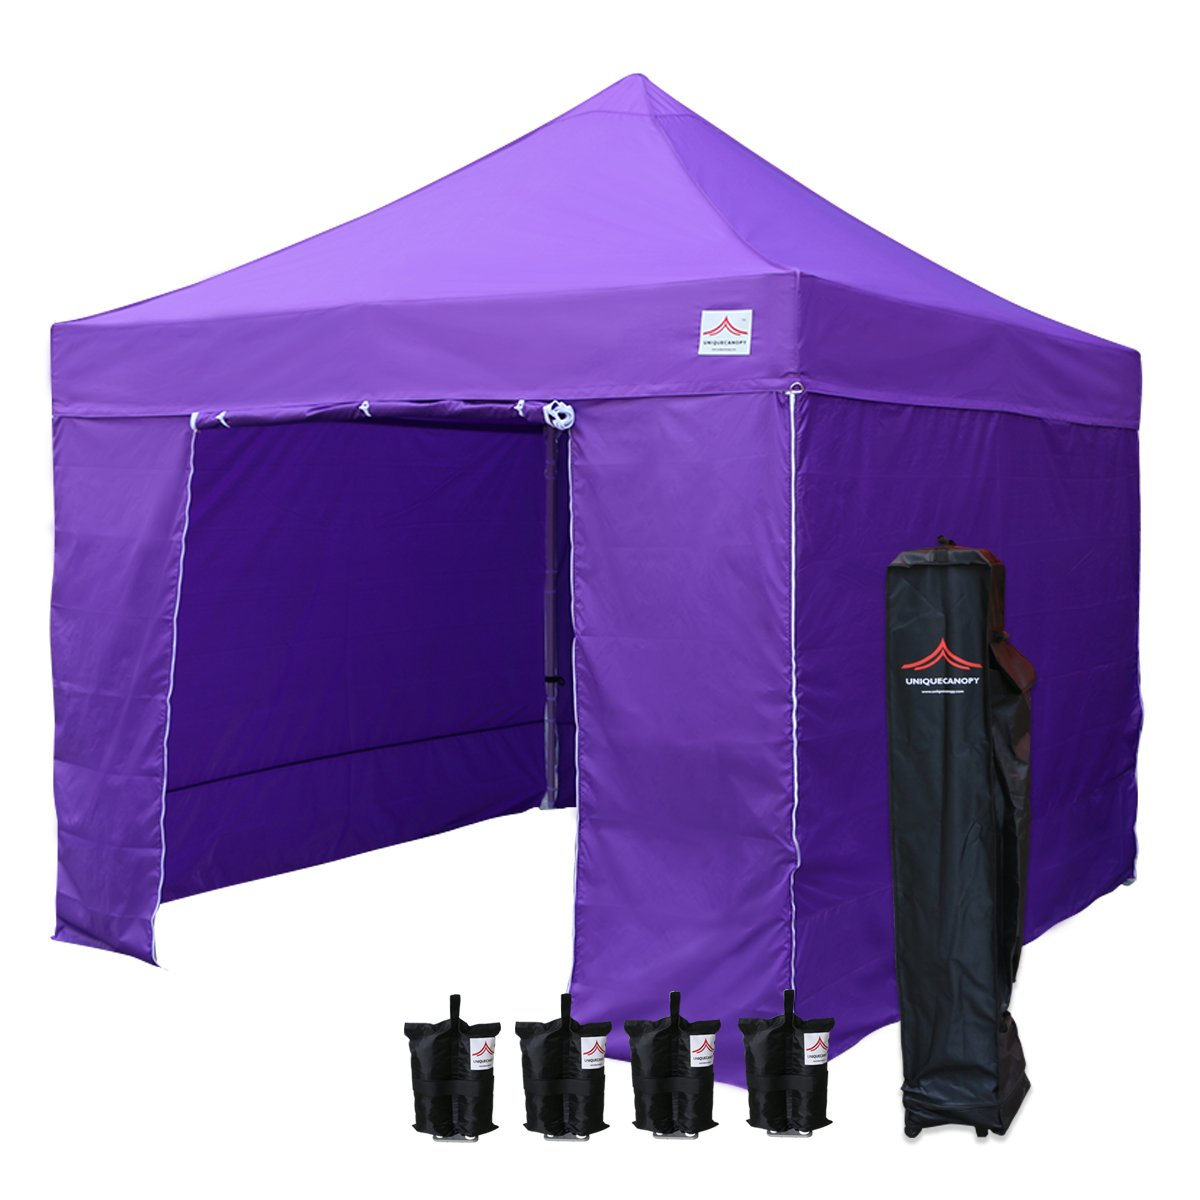 UNIQUECANOPY 10x10 Ez Pop up Canopy Tents for Parties Outdoor Portable Instant Folded Commercial Popup Shelter, with 4 Zippered Side Walls and Wheeled Carrying Bag Bonus 4 Sandbags Purple